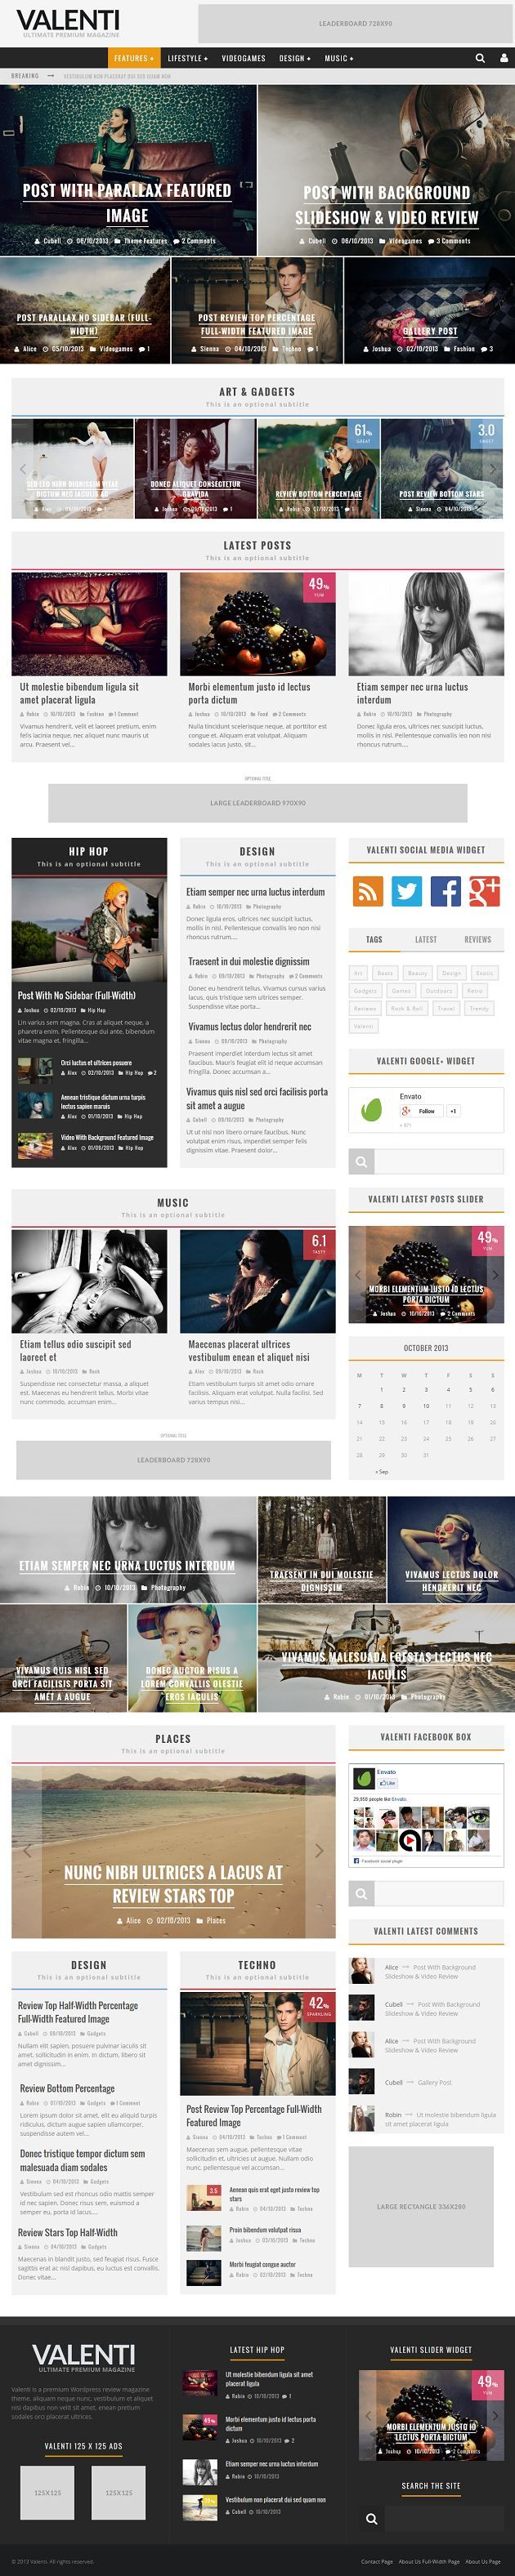 Valenti – WordPress HD Review Magazine News Theme. #best_wordpress_themes_2013